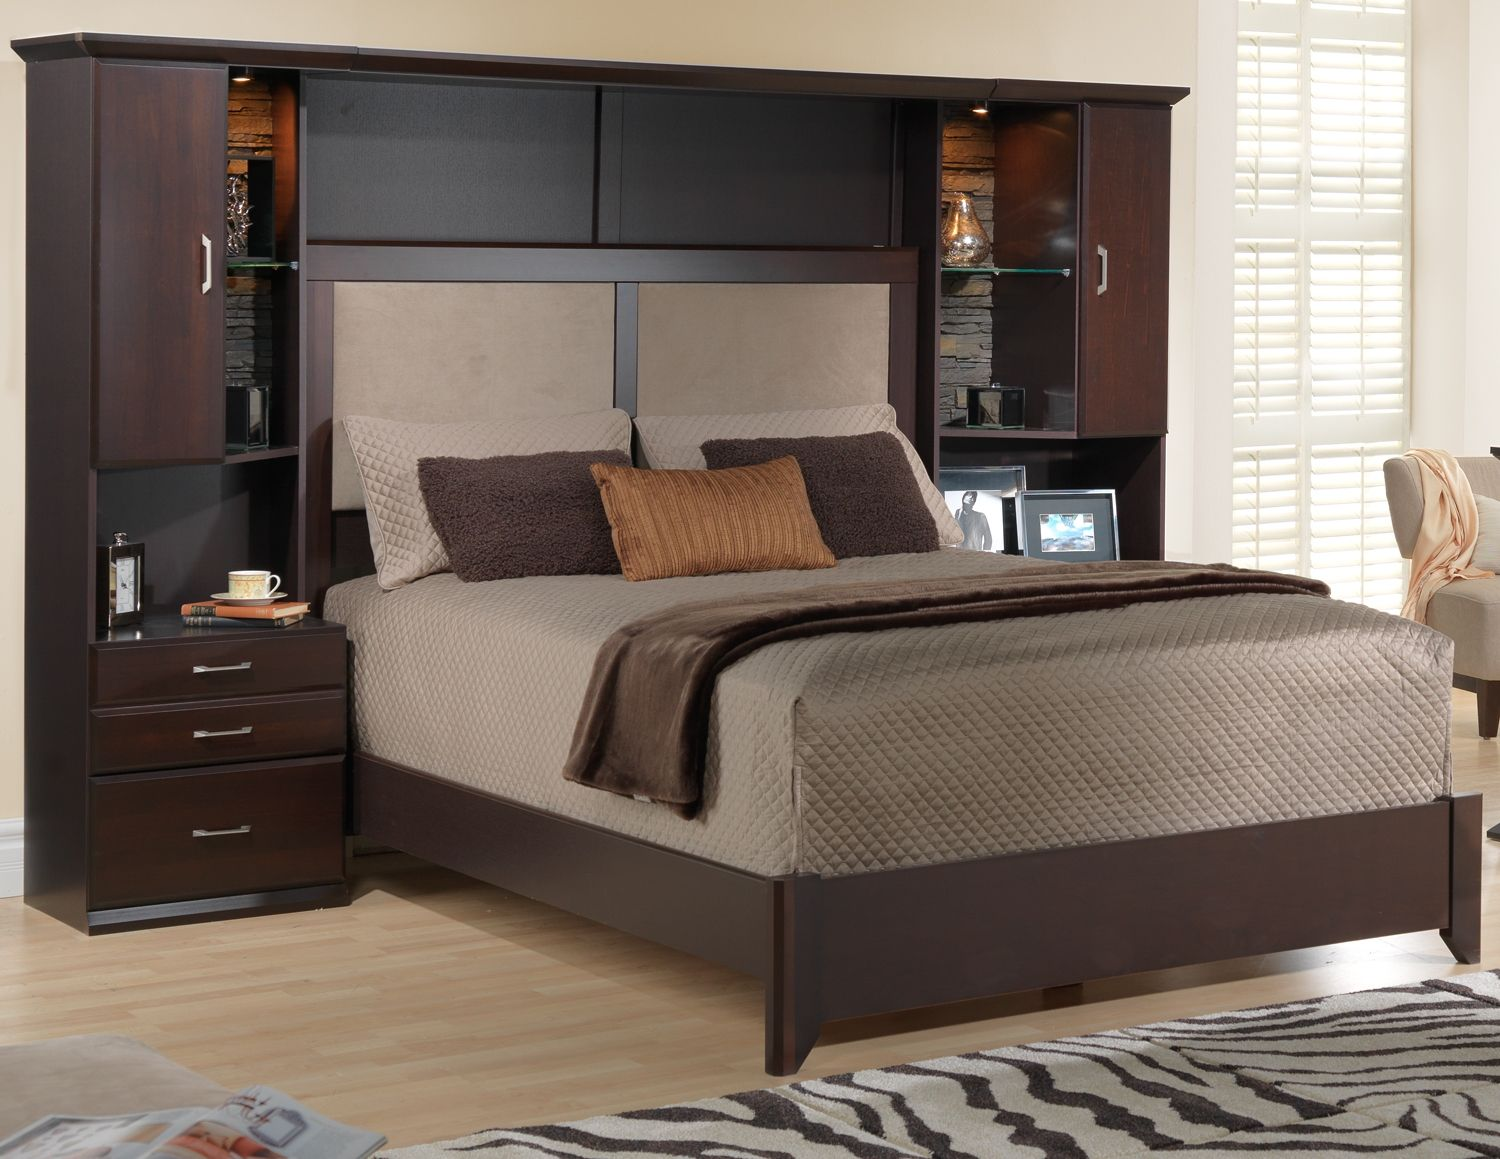 Sherwood bedroom 6 pc queen wall bed package leons bedroom sherwood bedroom 6 pc queen wall bed package leons amipublicfo Gallery